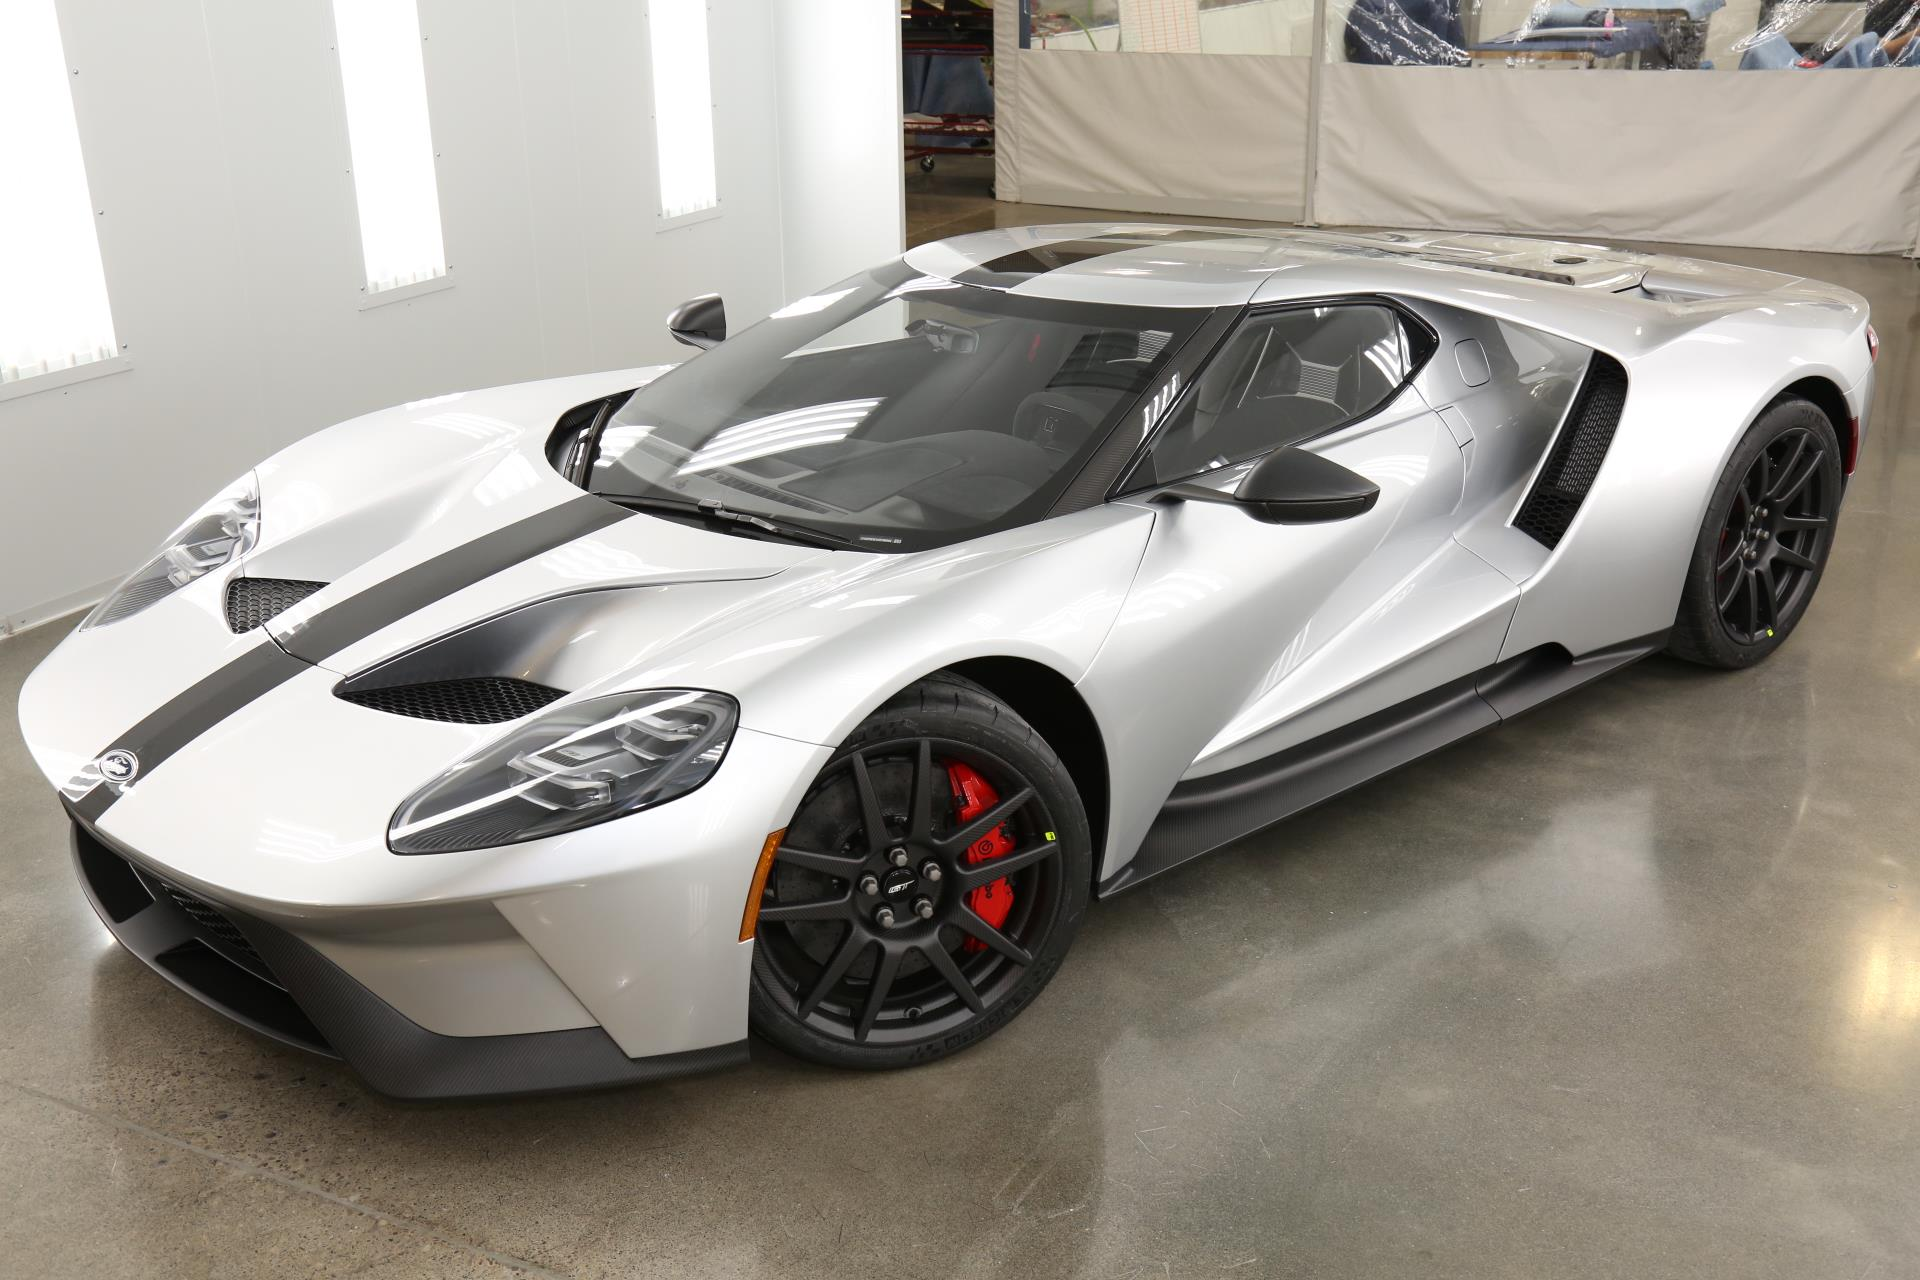 2017 ford gt competition series sheds unwanted weight for performance to go up autoevolution. Black Bedroom Furniture Sets. Home Design Ideas